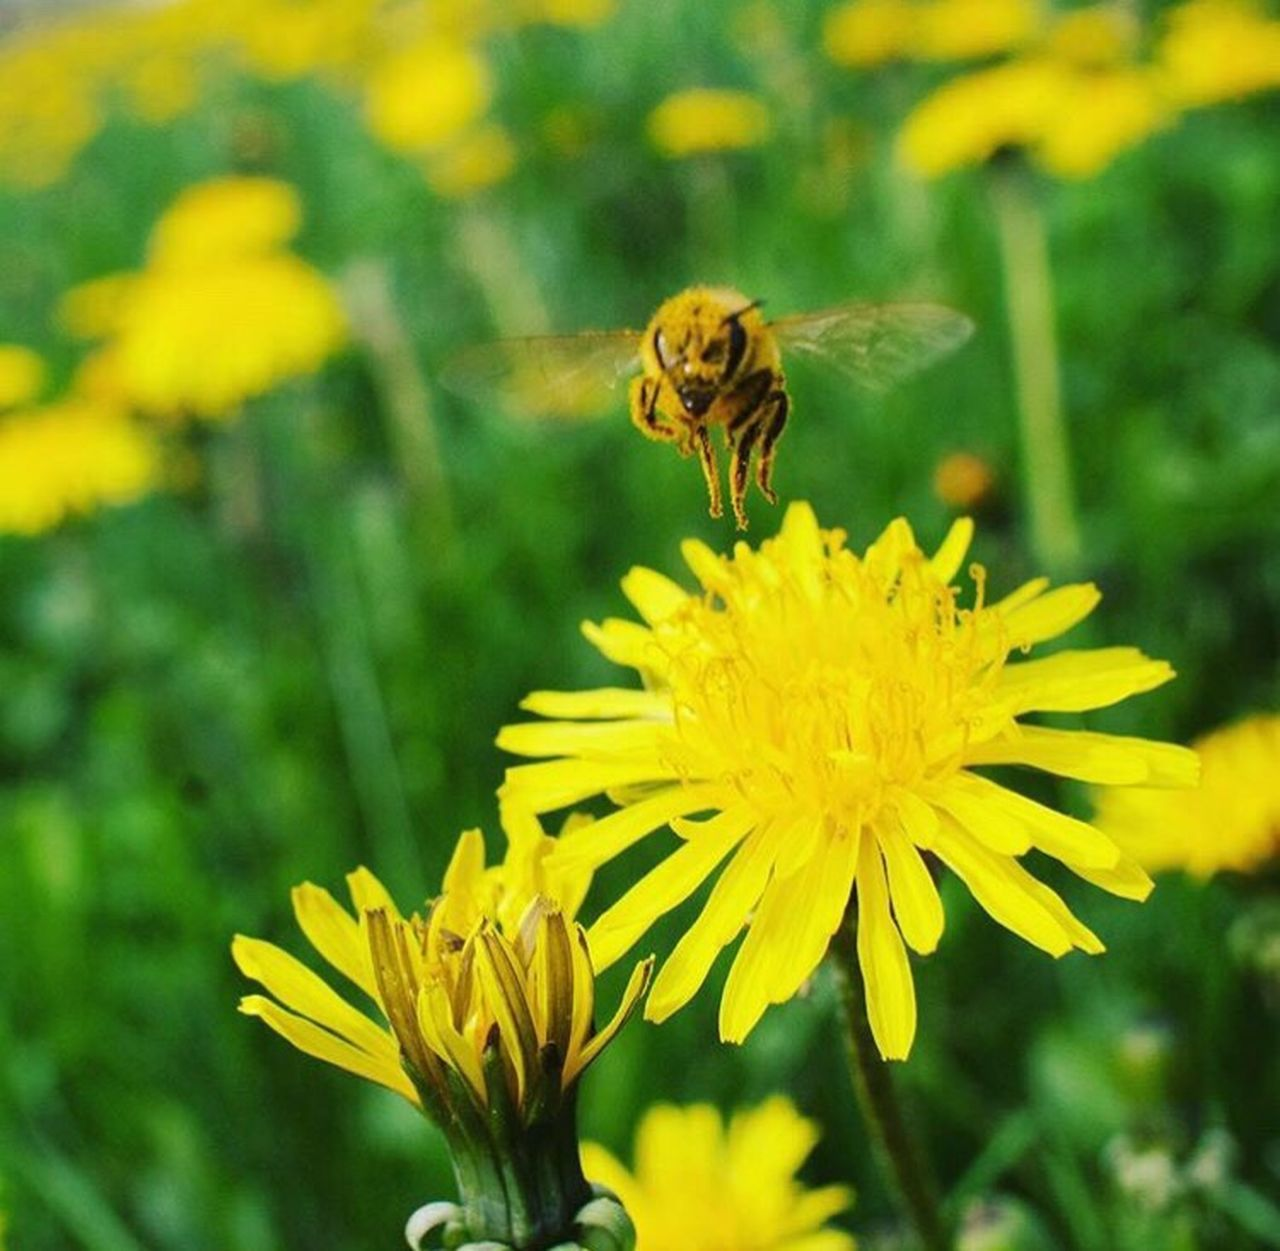 flower, insect, yellow, nature, petal, one animal, animals in the wild, animal themes, fragility, plant, beauty in nature, growth, freshness, flower head, bee, focus on foreground, outdoors, no people, pollination, day, close-up, blooming, animal wildlife, buzzing